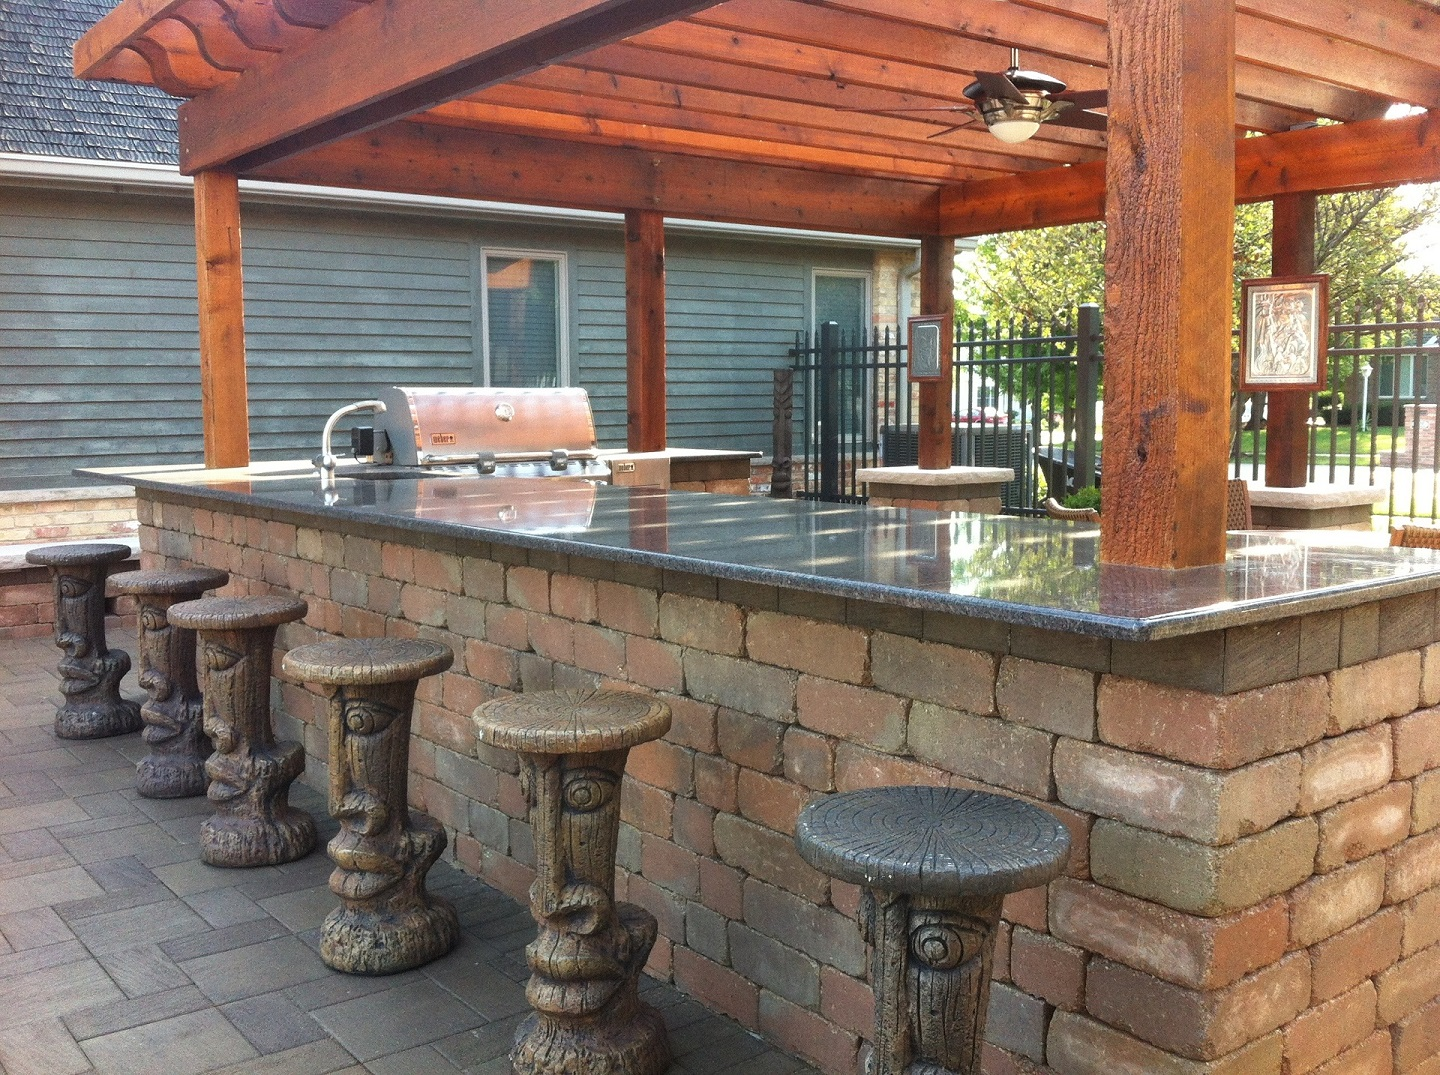 Peotone, IL outdoor kitchen with pergola